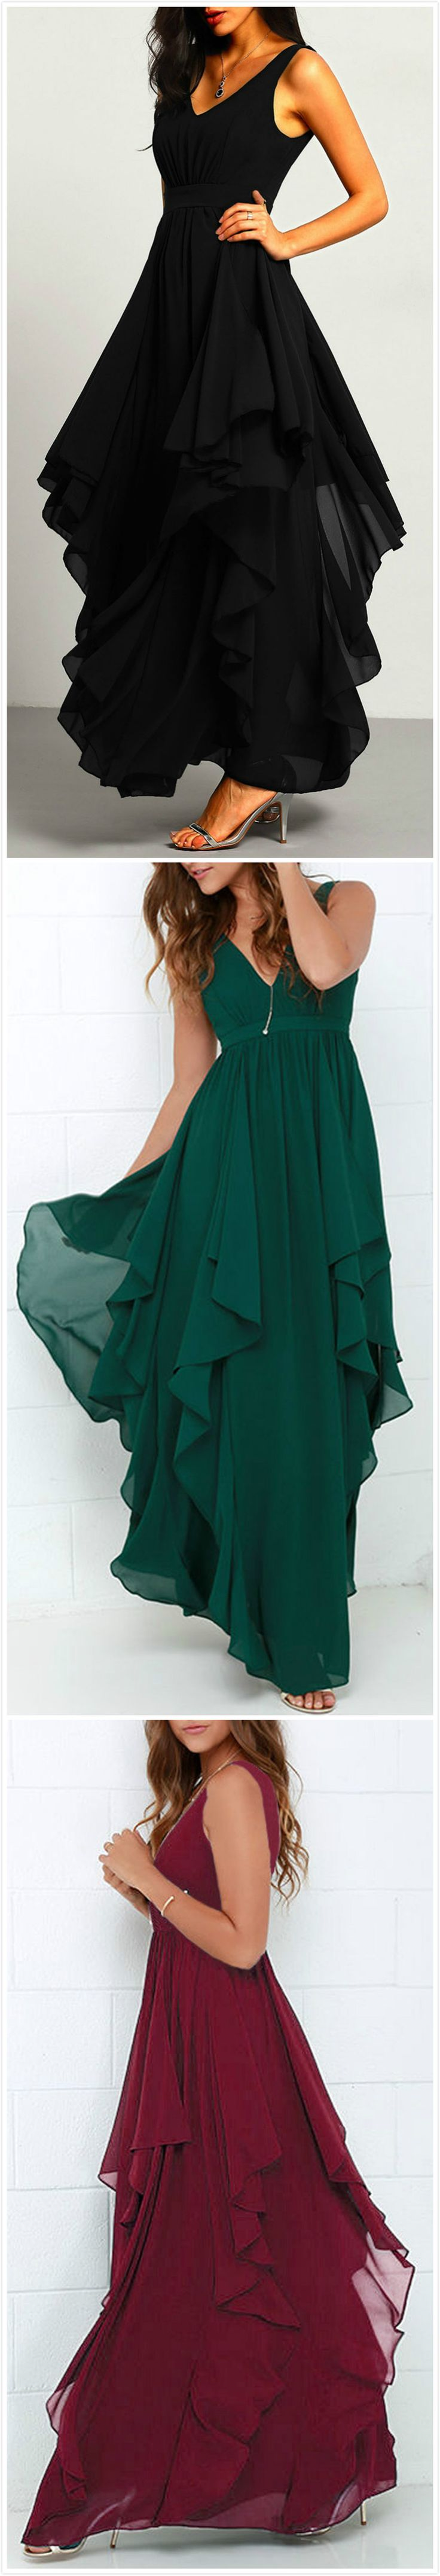 The best images about fashion diva on pinterest gowns waist